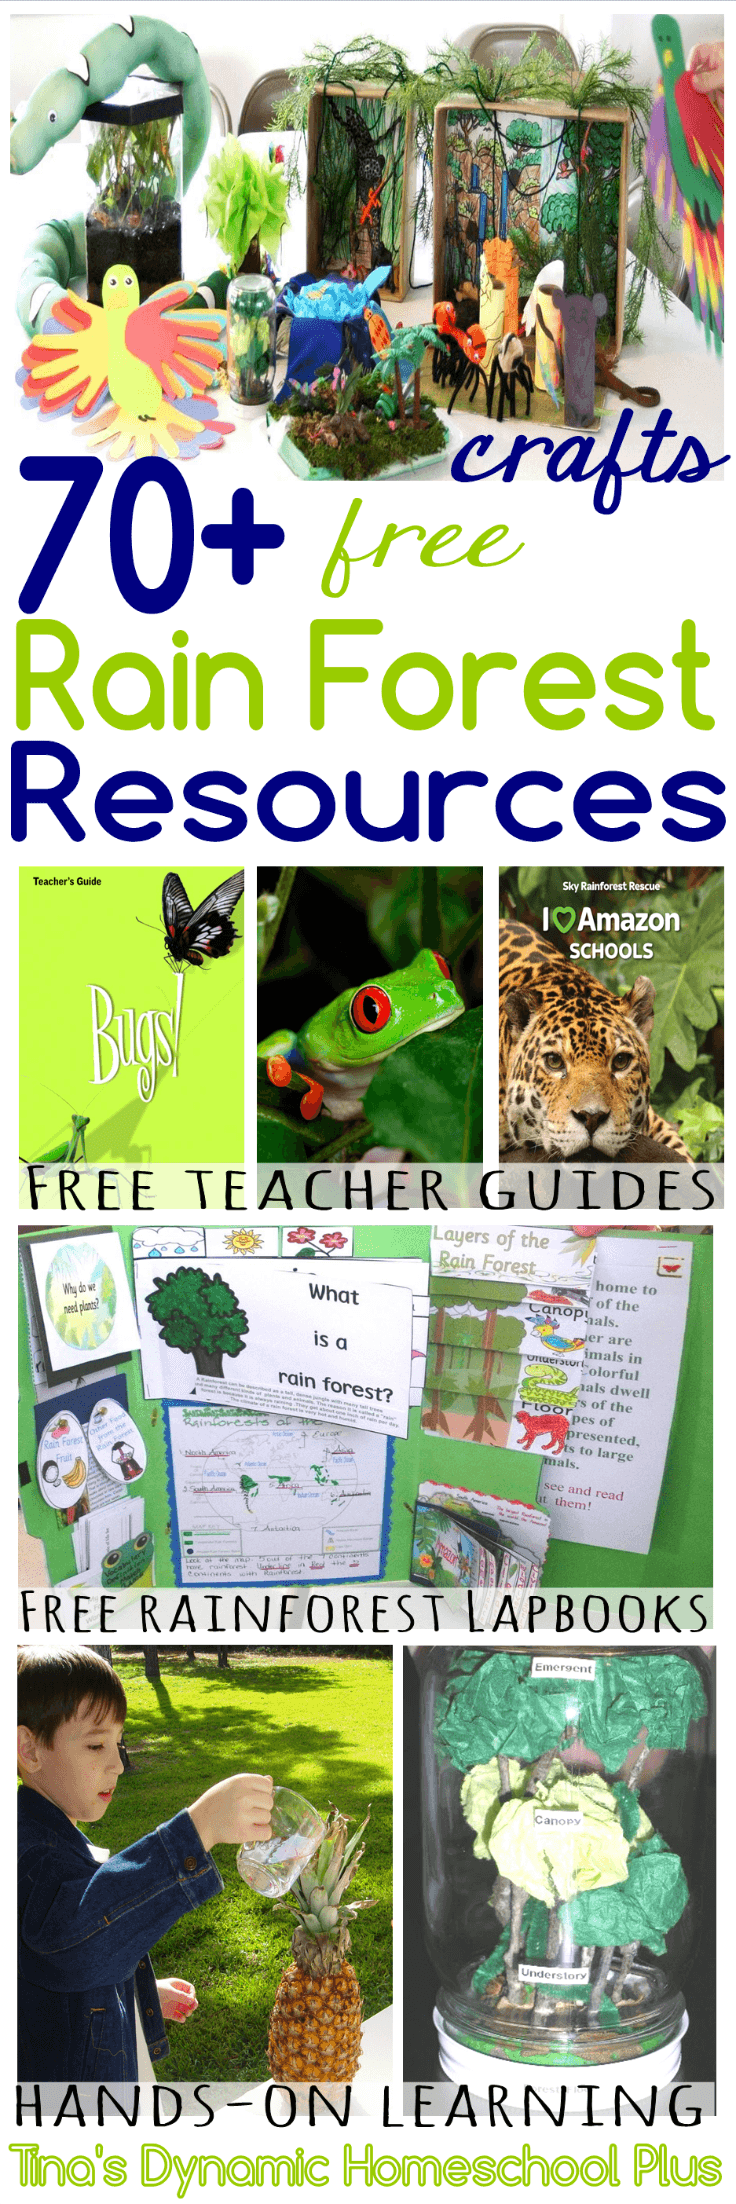 Over 70 Free Amazon Rain Forest Resources! Great for a homeschool unit study or just learning about the Amazon Rain Forest. Click here to grab these AWESOME resources!